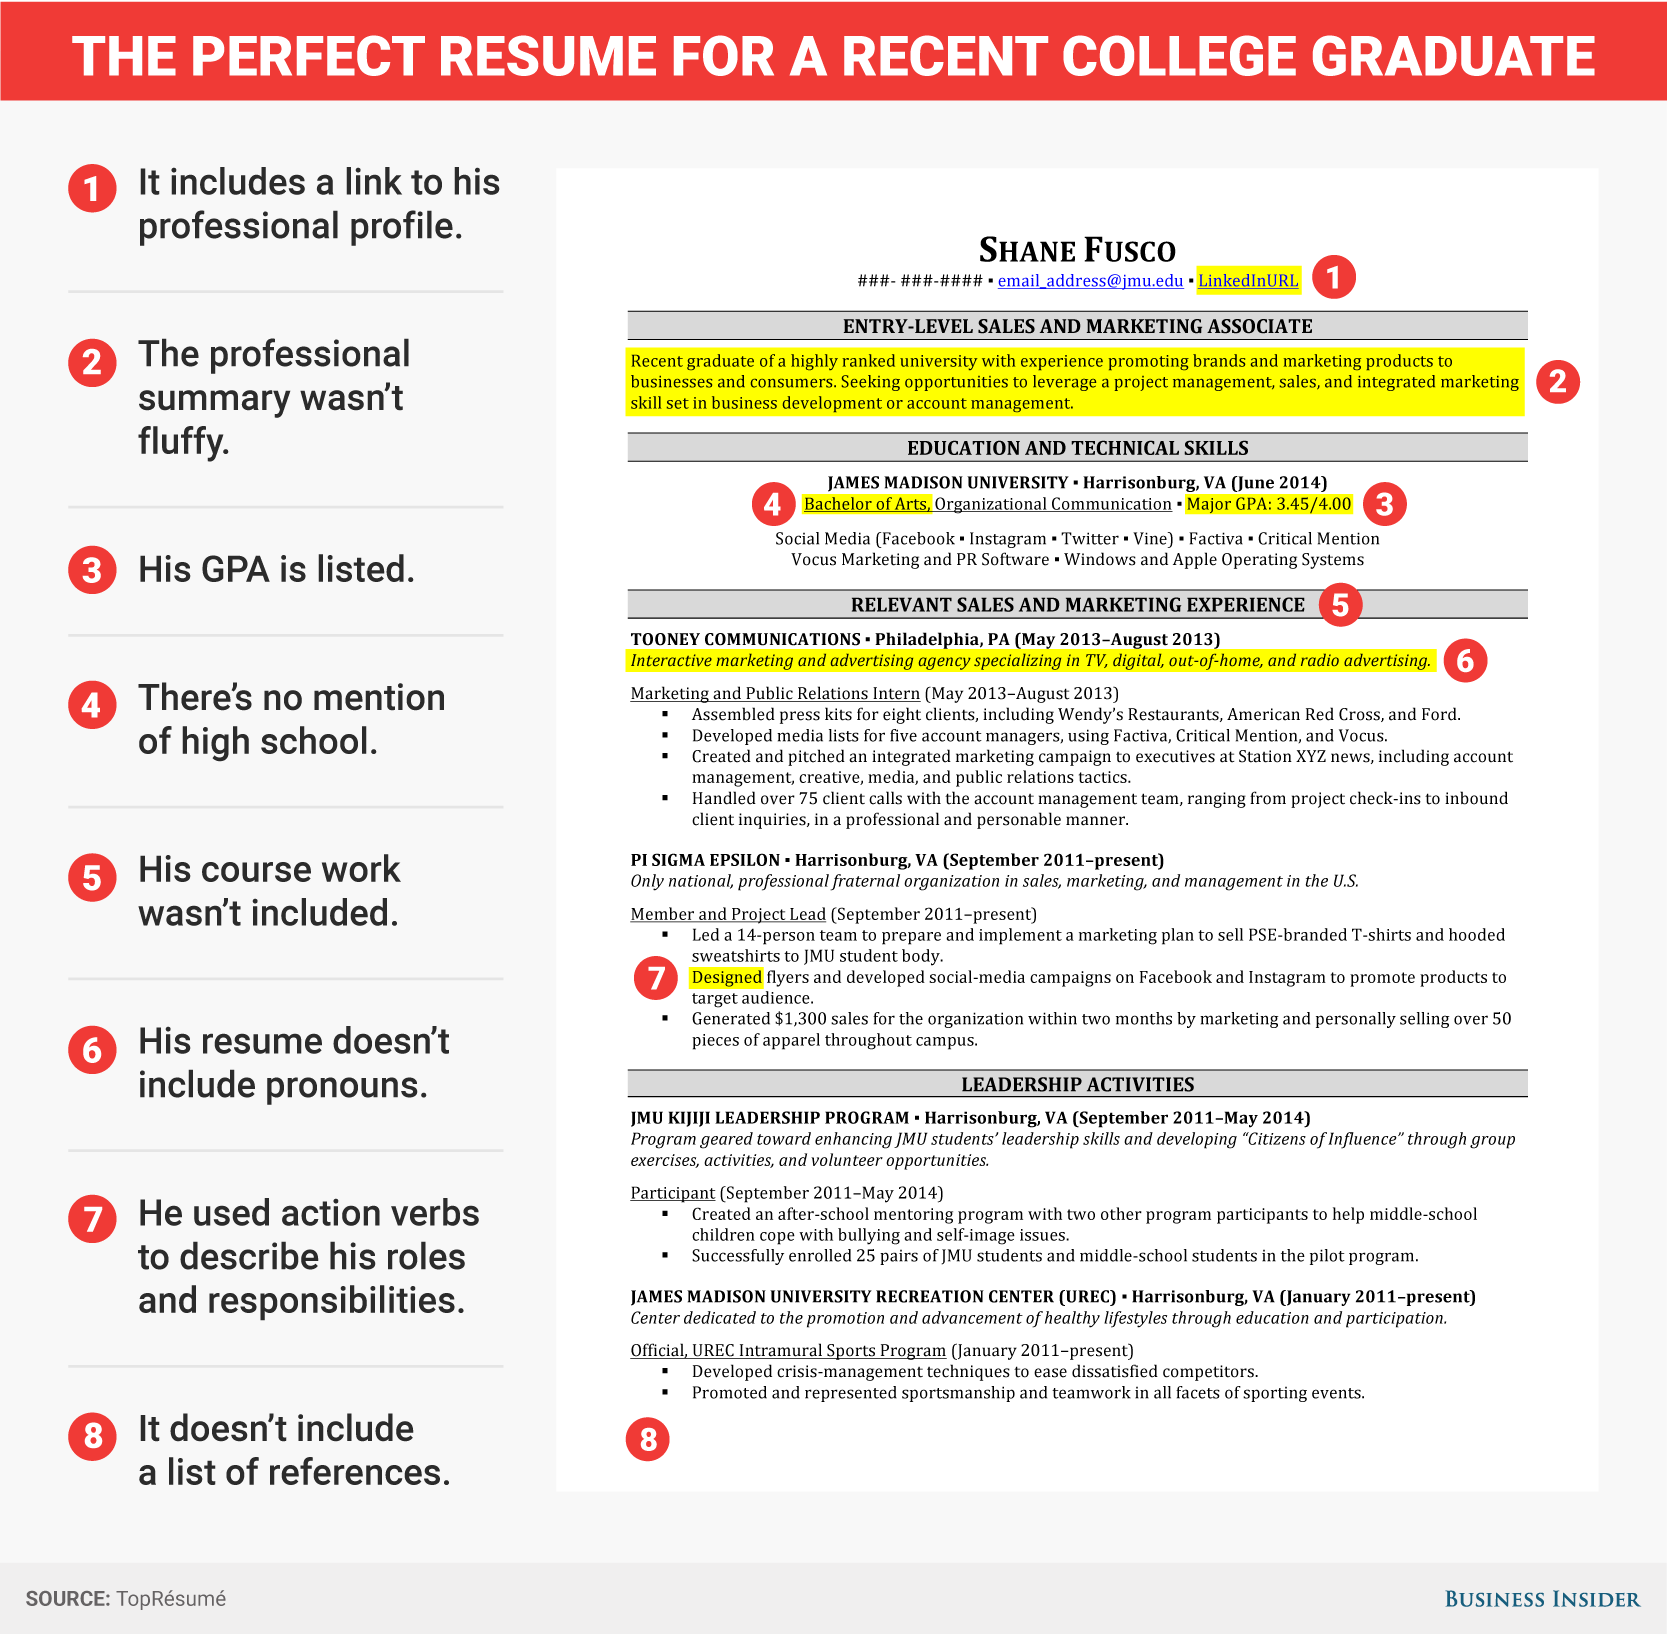 Resume Makeover We Helped A Highly Experienced Recruiter Excellent Resume For Recent College Grad Business Insider